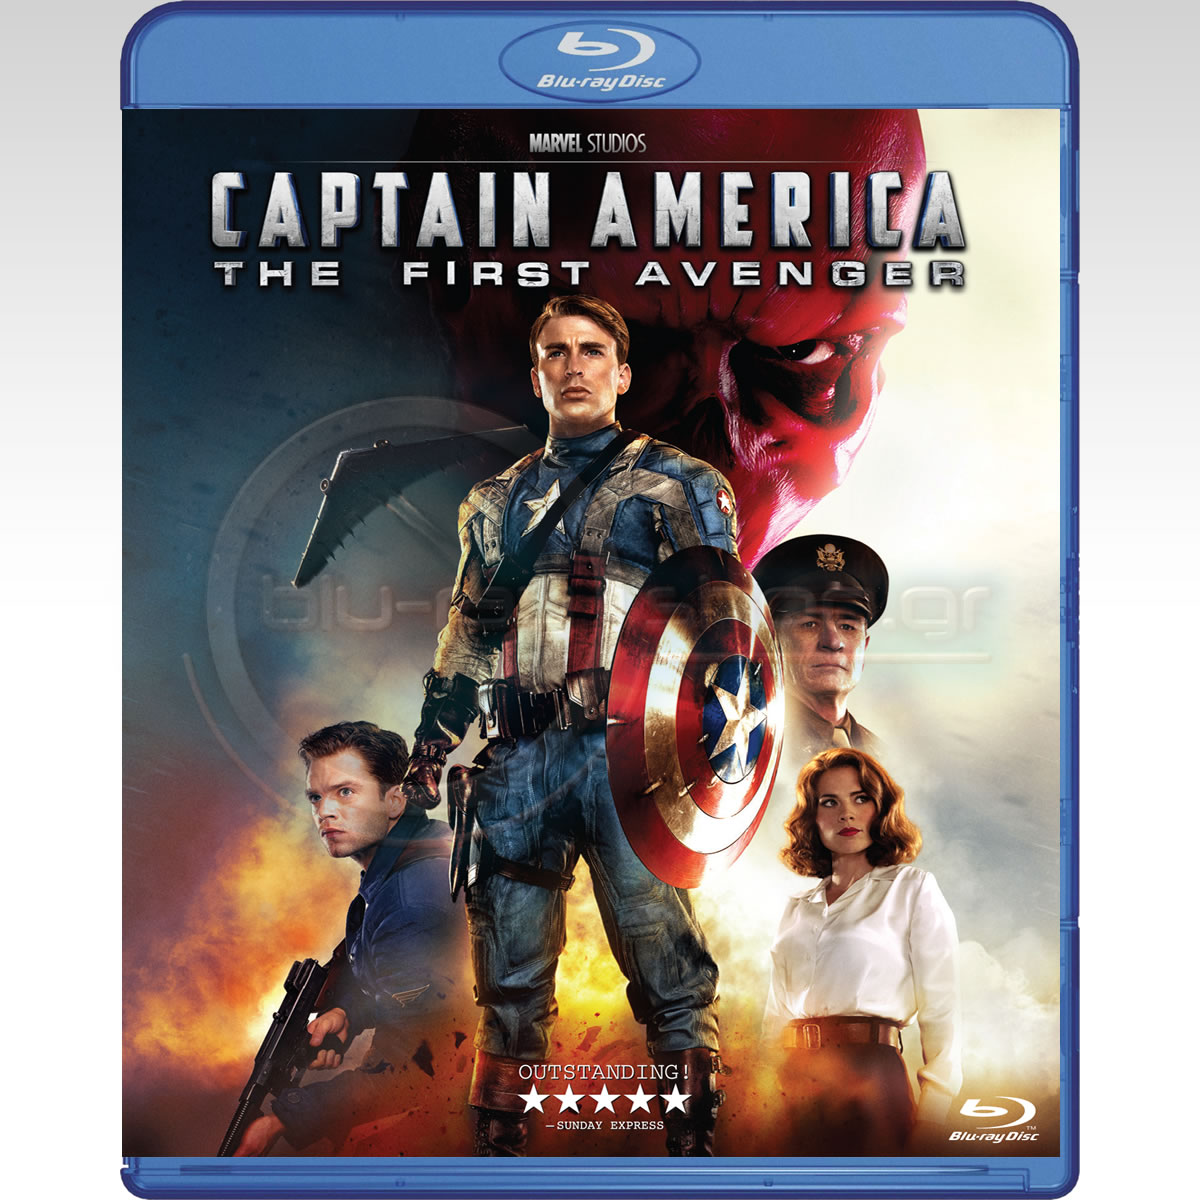 CAPTAIN AMERICA: THE FIRST AVENGER - CAPTAIN AMERICA: Ο ΠΡΩΤΟΣ ΕΚΔΙΚΗΤΗΣ (BLU-RAY)